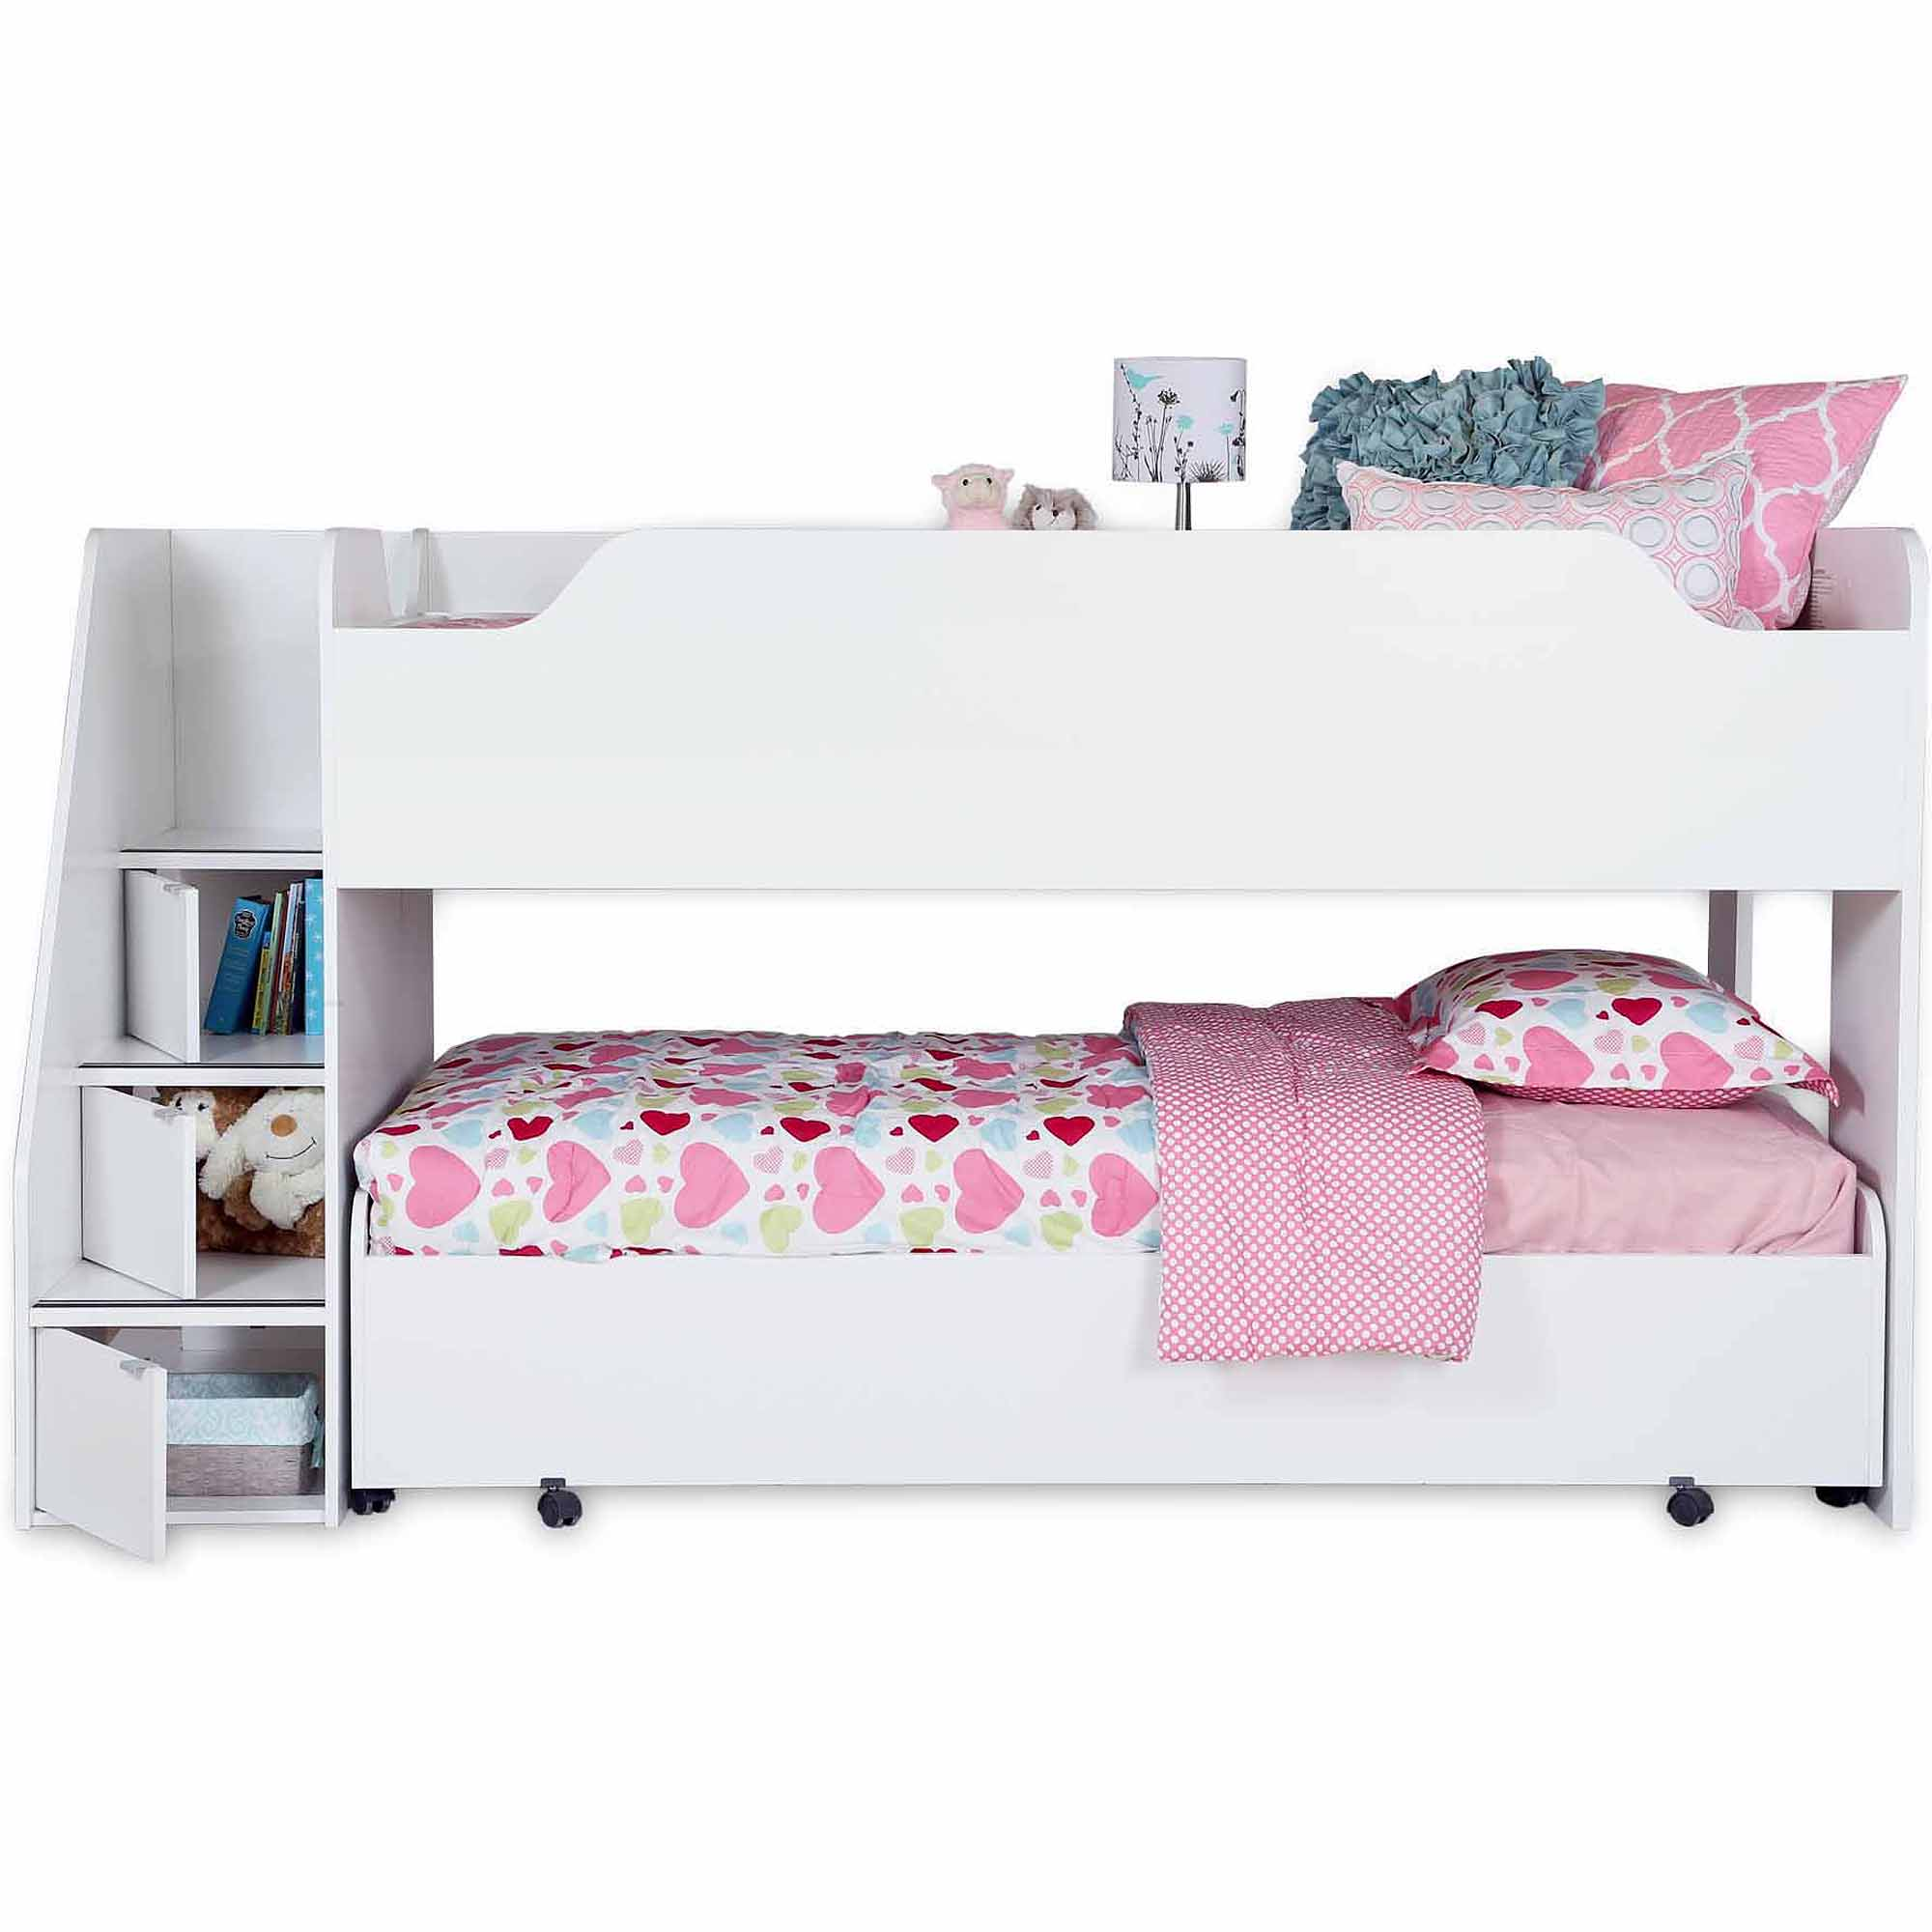 South Shore Mobby Twin Trundle Bed on Casters, Multiple Finishes